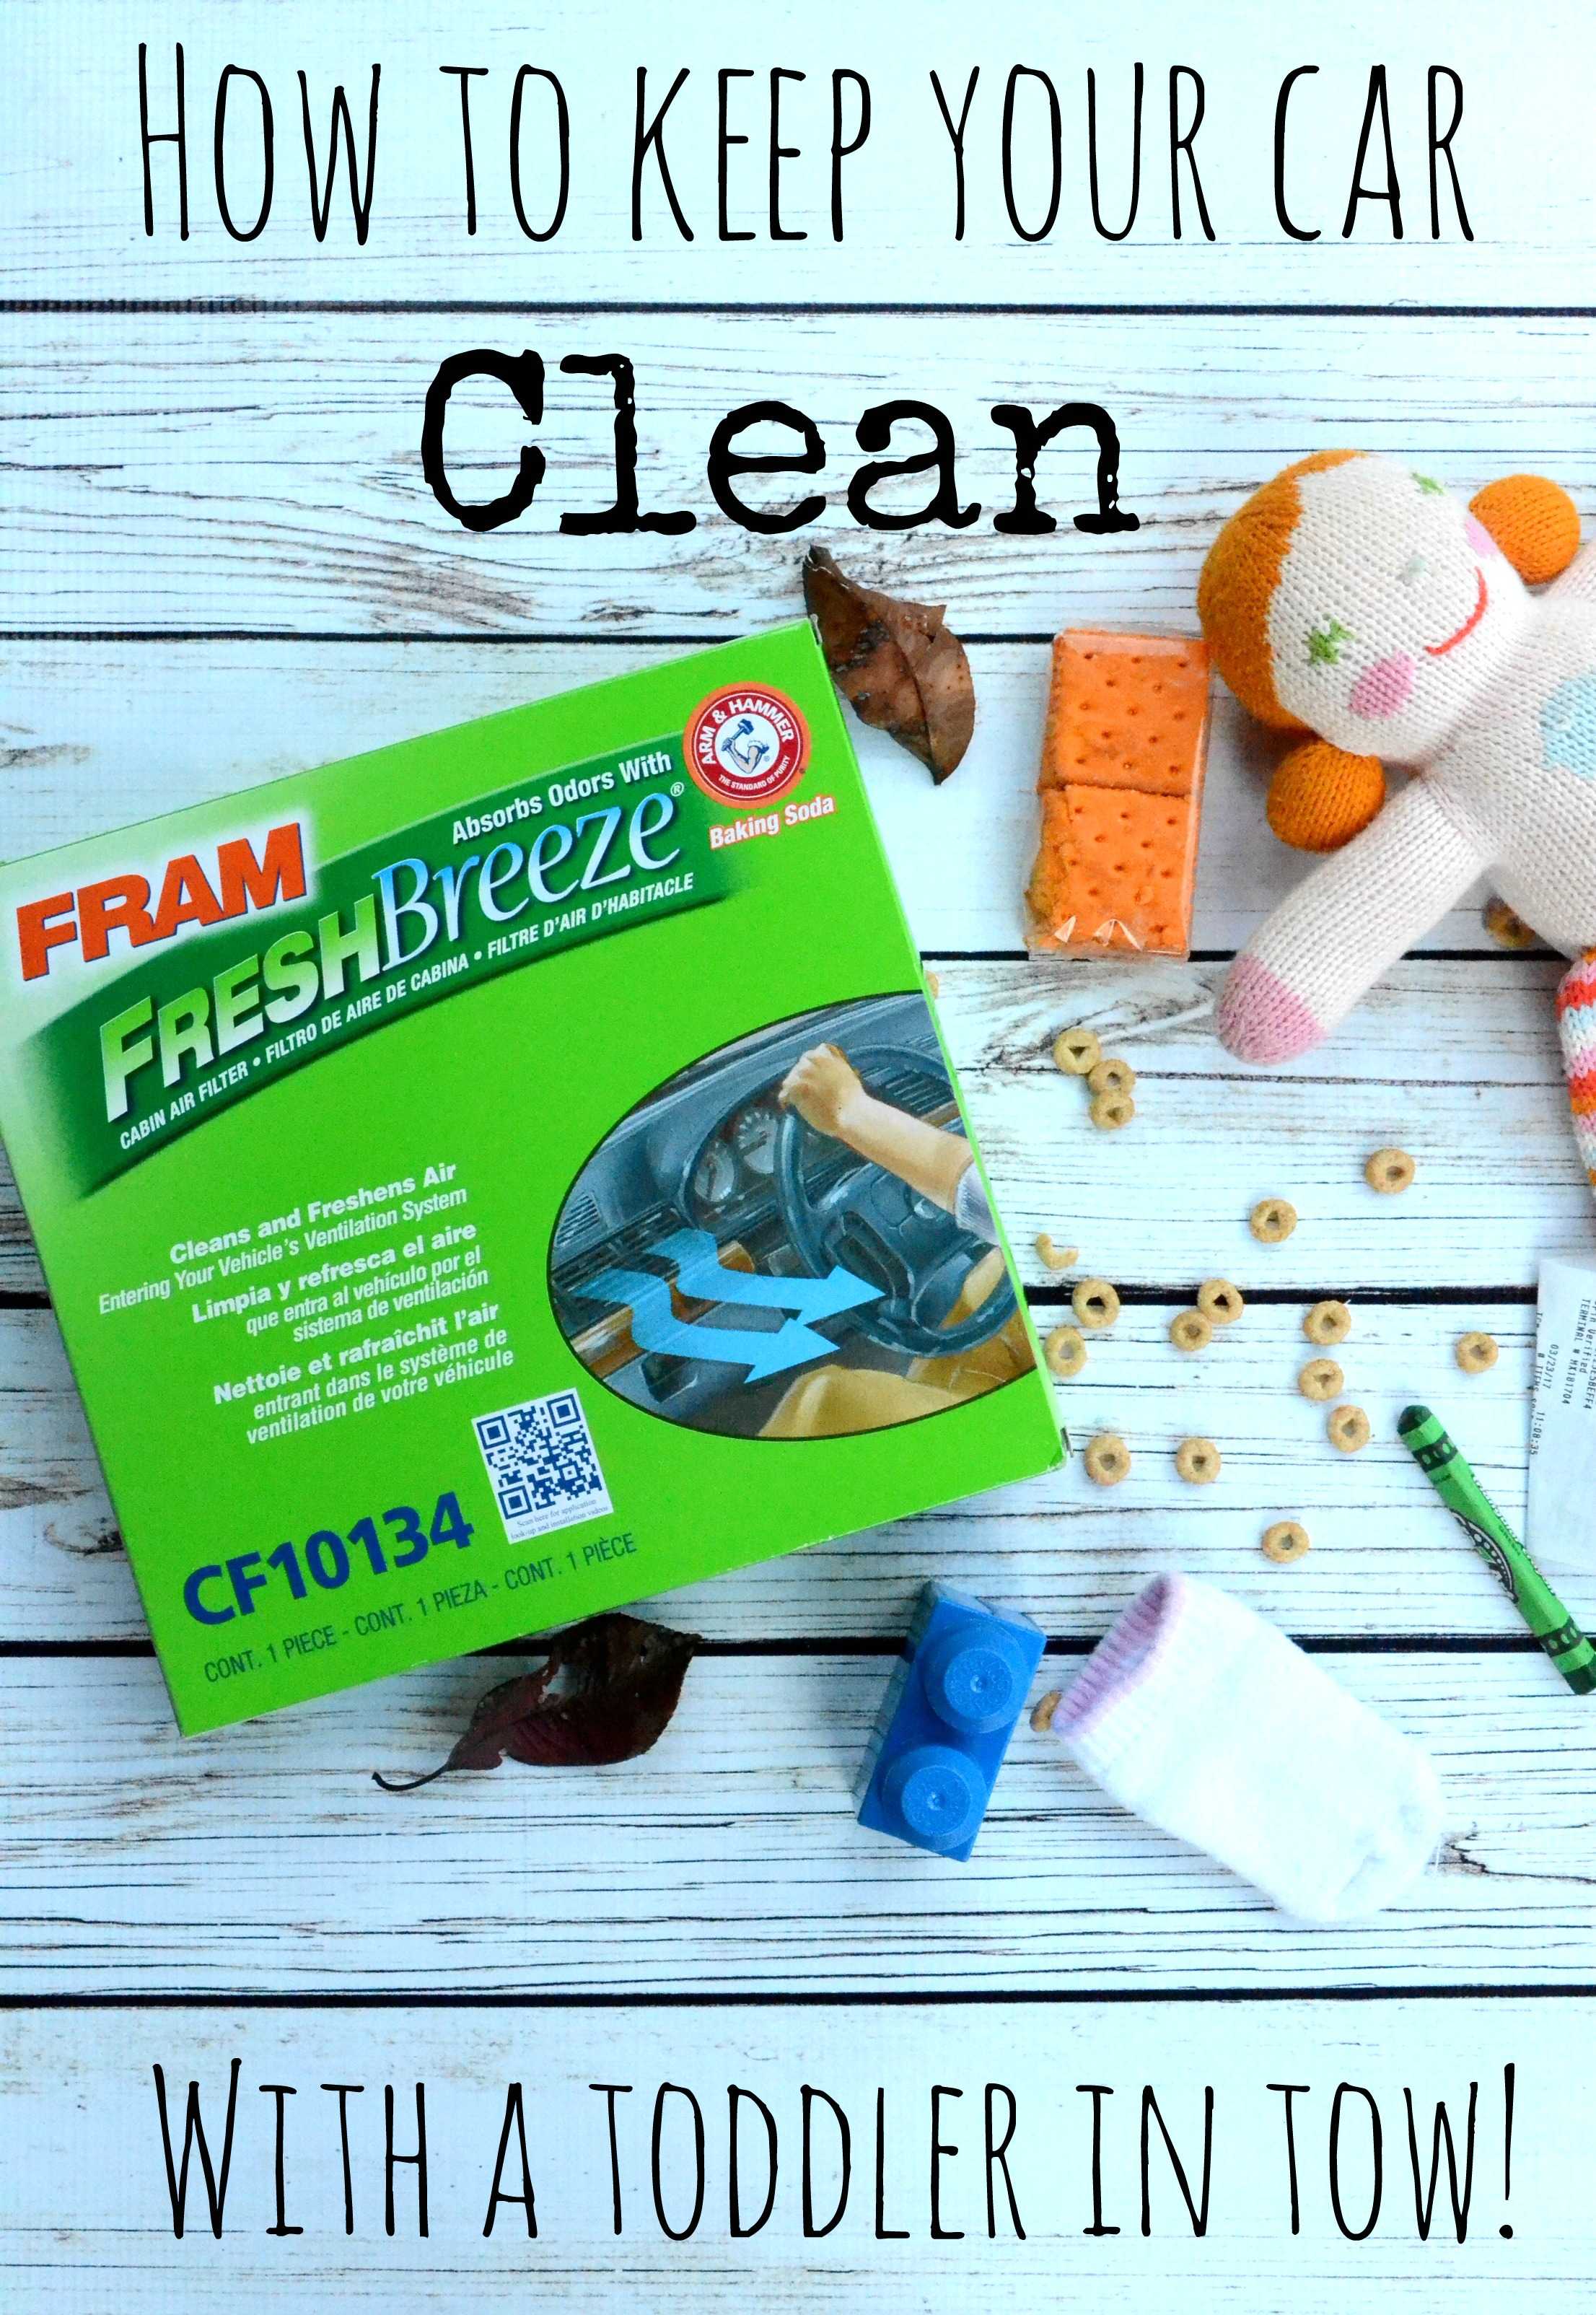 How To Keep Your Car Clean - With a Toddler In Tow! #FRAMFreshBreeze #ad